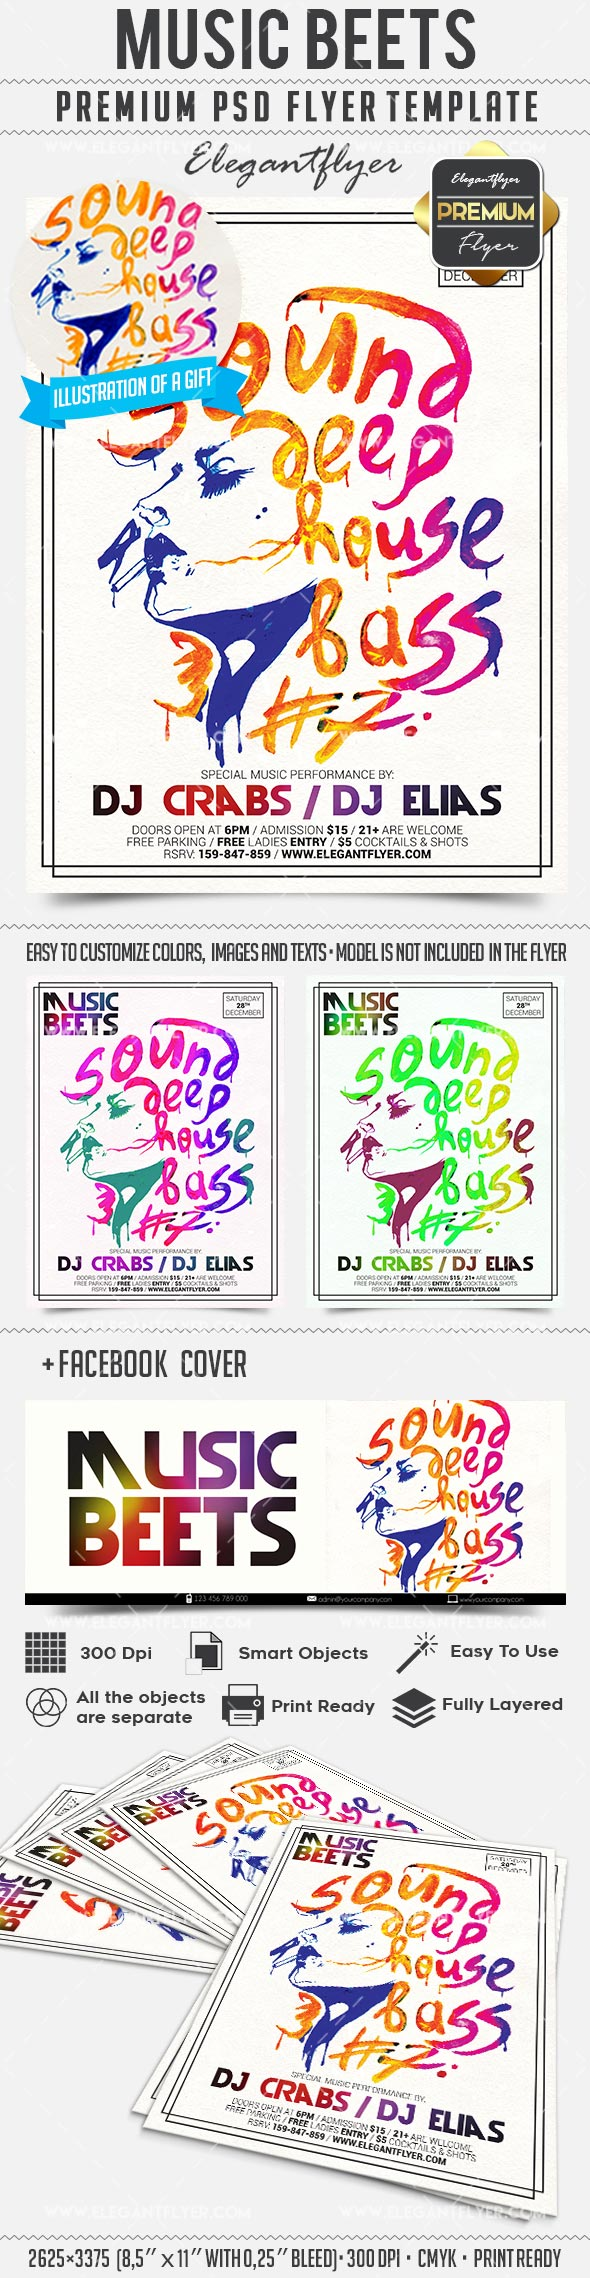 Music Beets – Flyer PSD Template